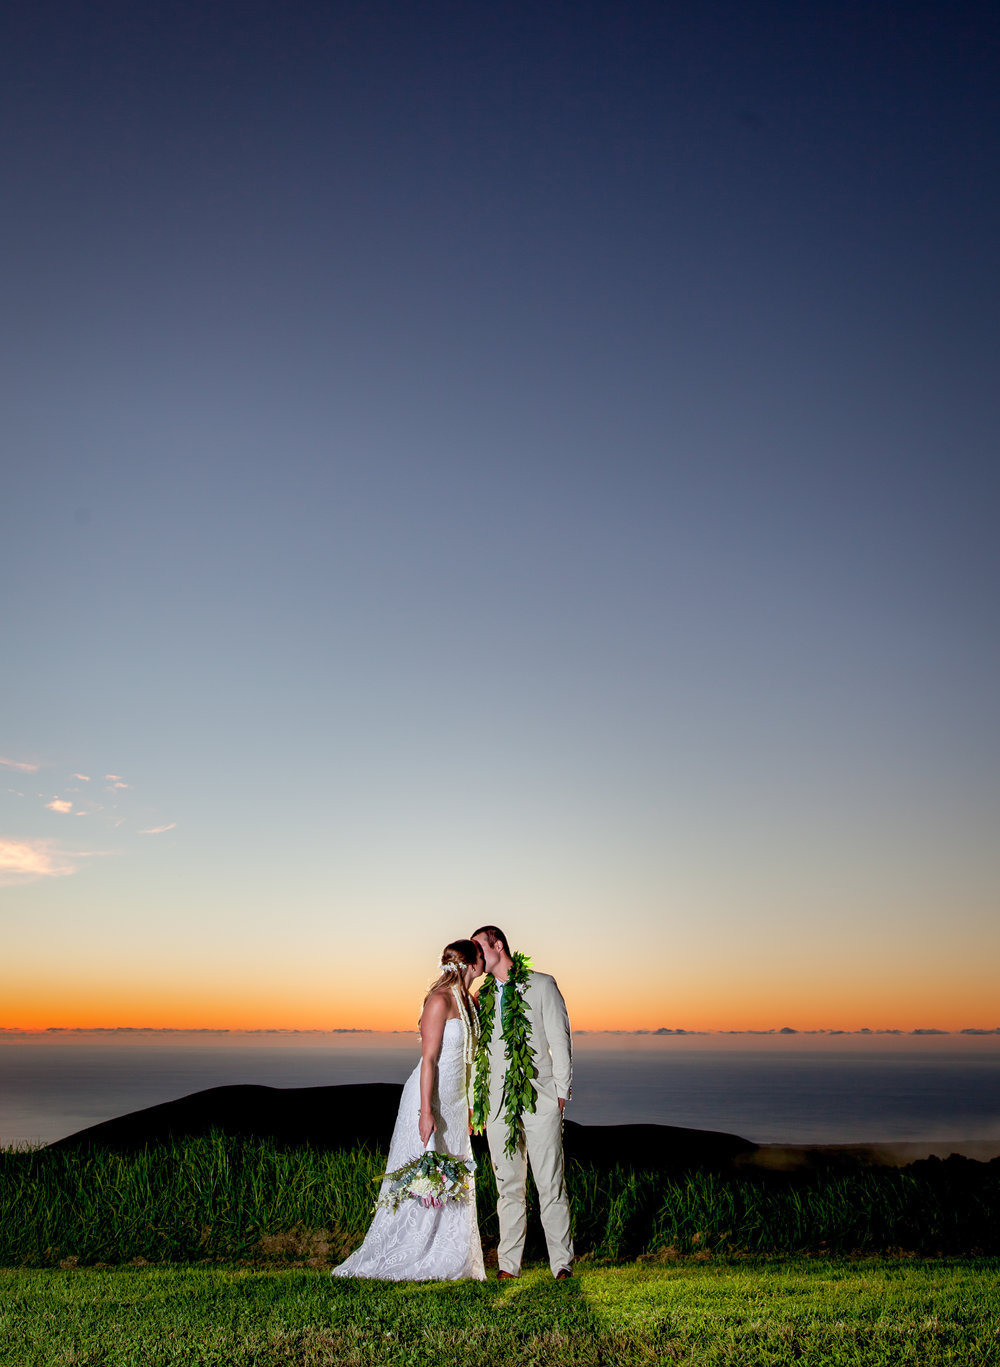 big island hawaii kahua ranch wedding © kelilina photography 20170106180813.jpg